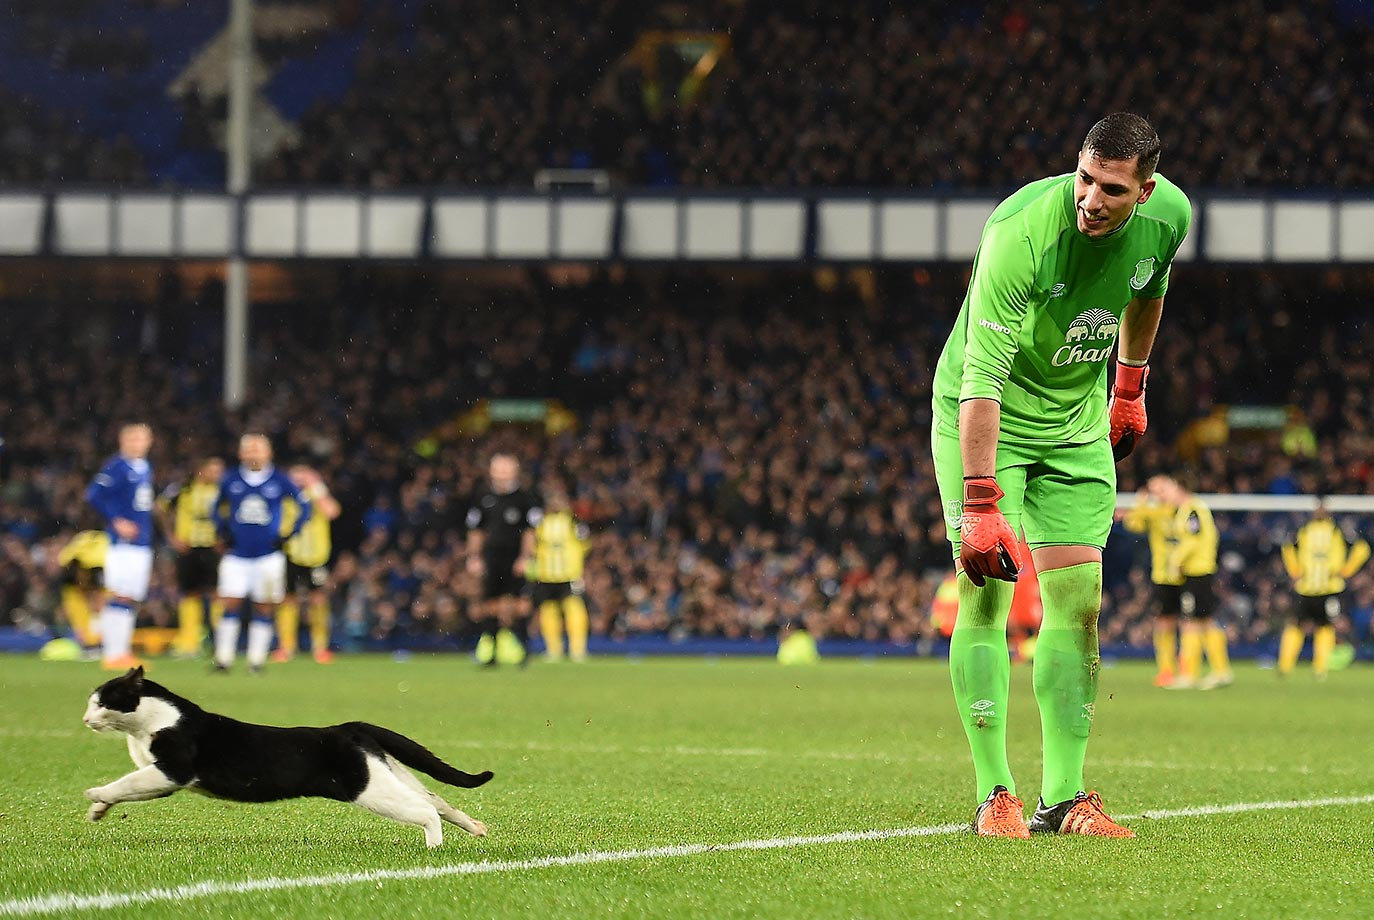 Joel Robles of Everton attempts to catch a cat during the FA Cup third-round football match between Everton and Dagenham & Redbridge in Liverpool.